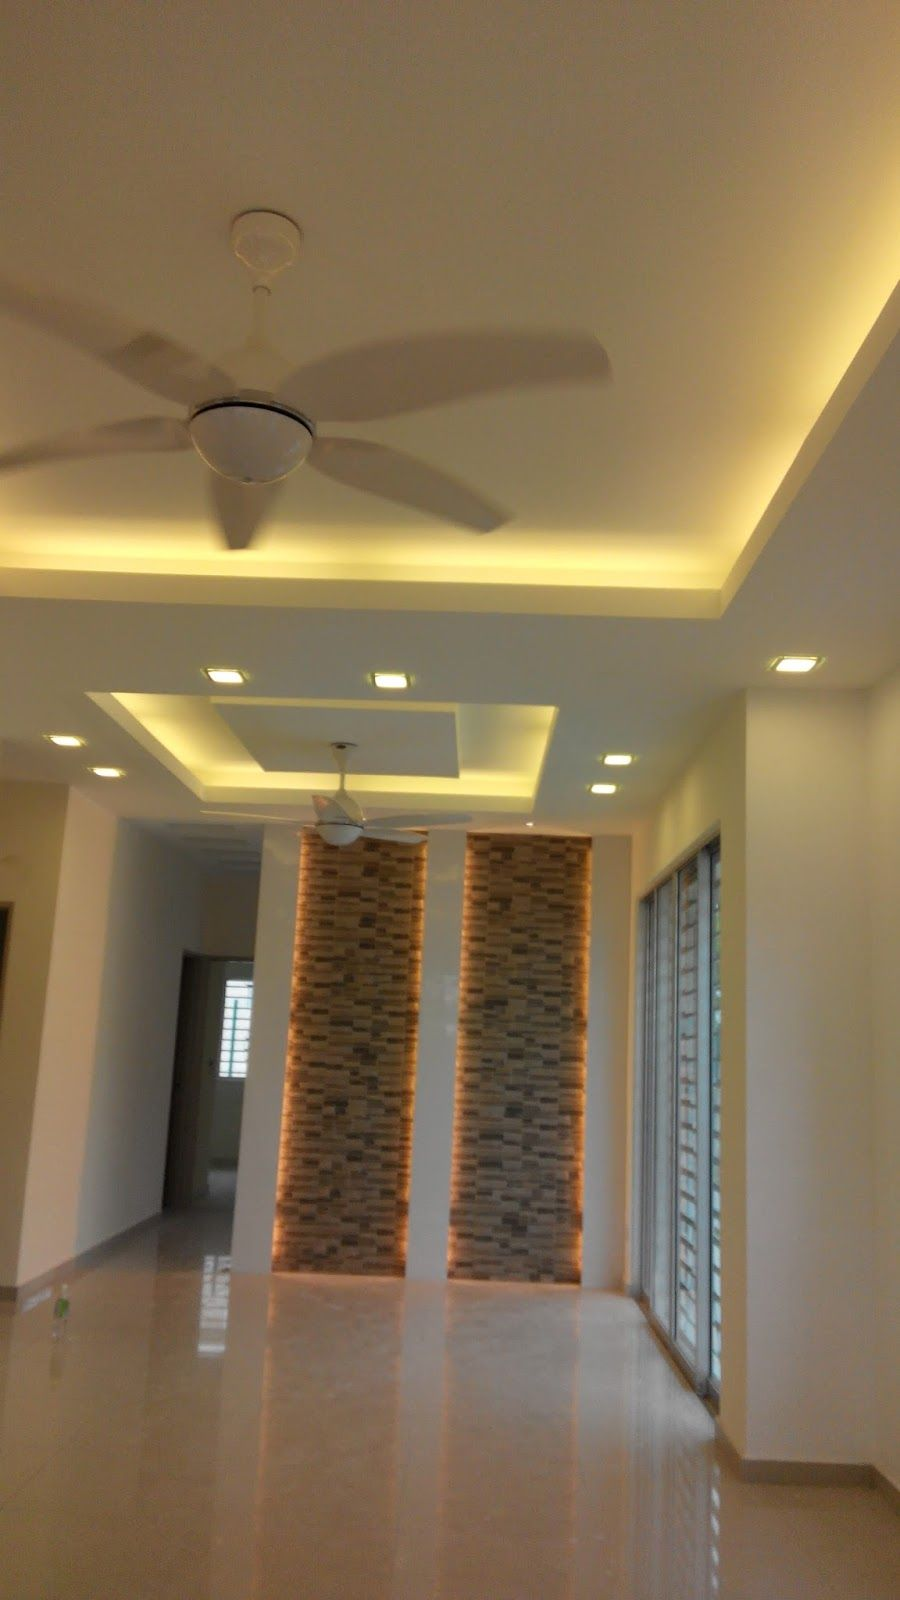 Harga Cornice Gypsum Image Result For Harga Siling Gantung | Ceiling Ideas